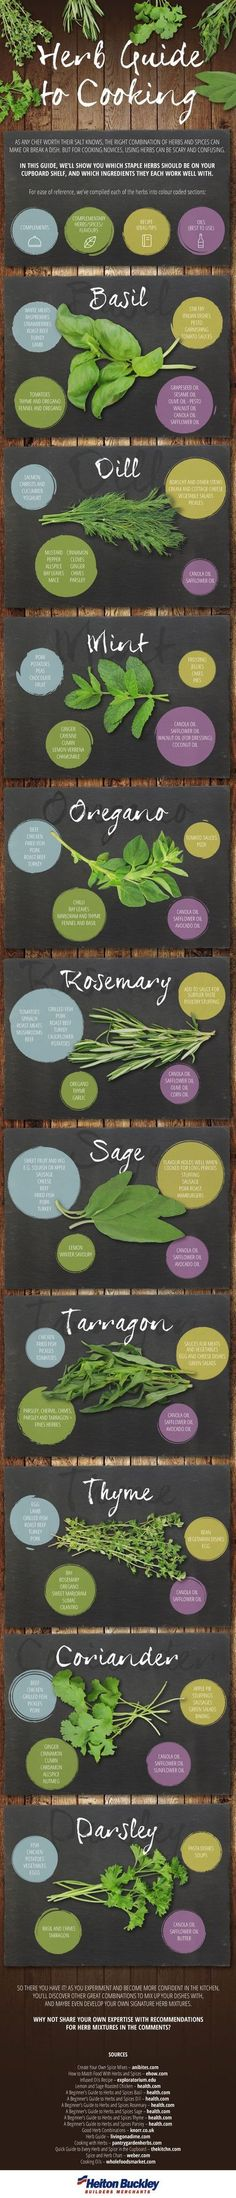 The Ultimate Guide To Cooking With Herbs